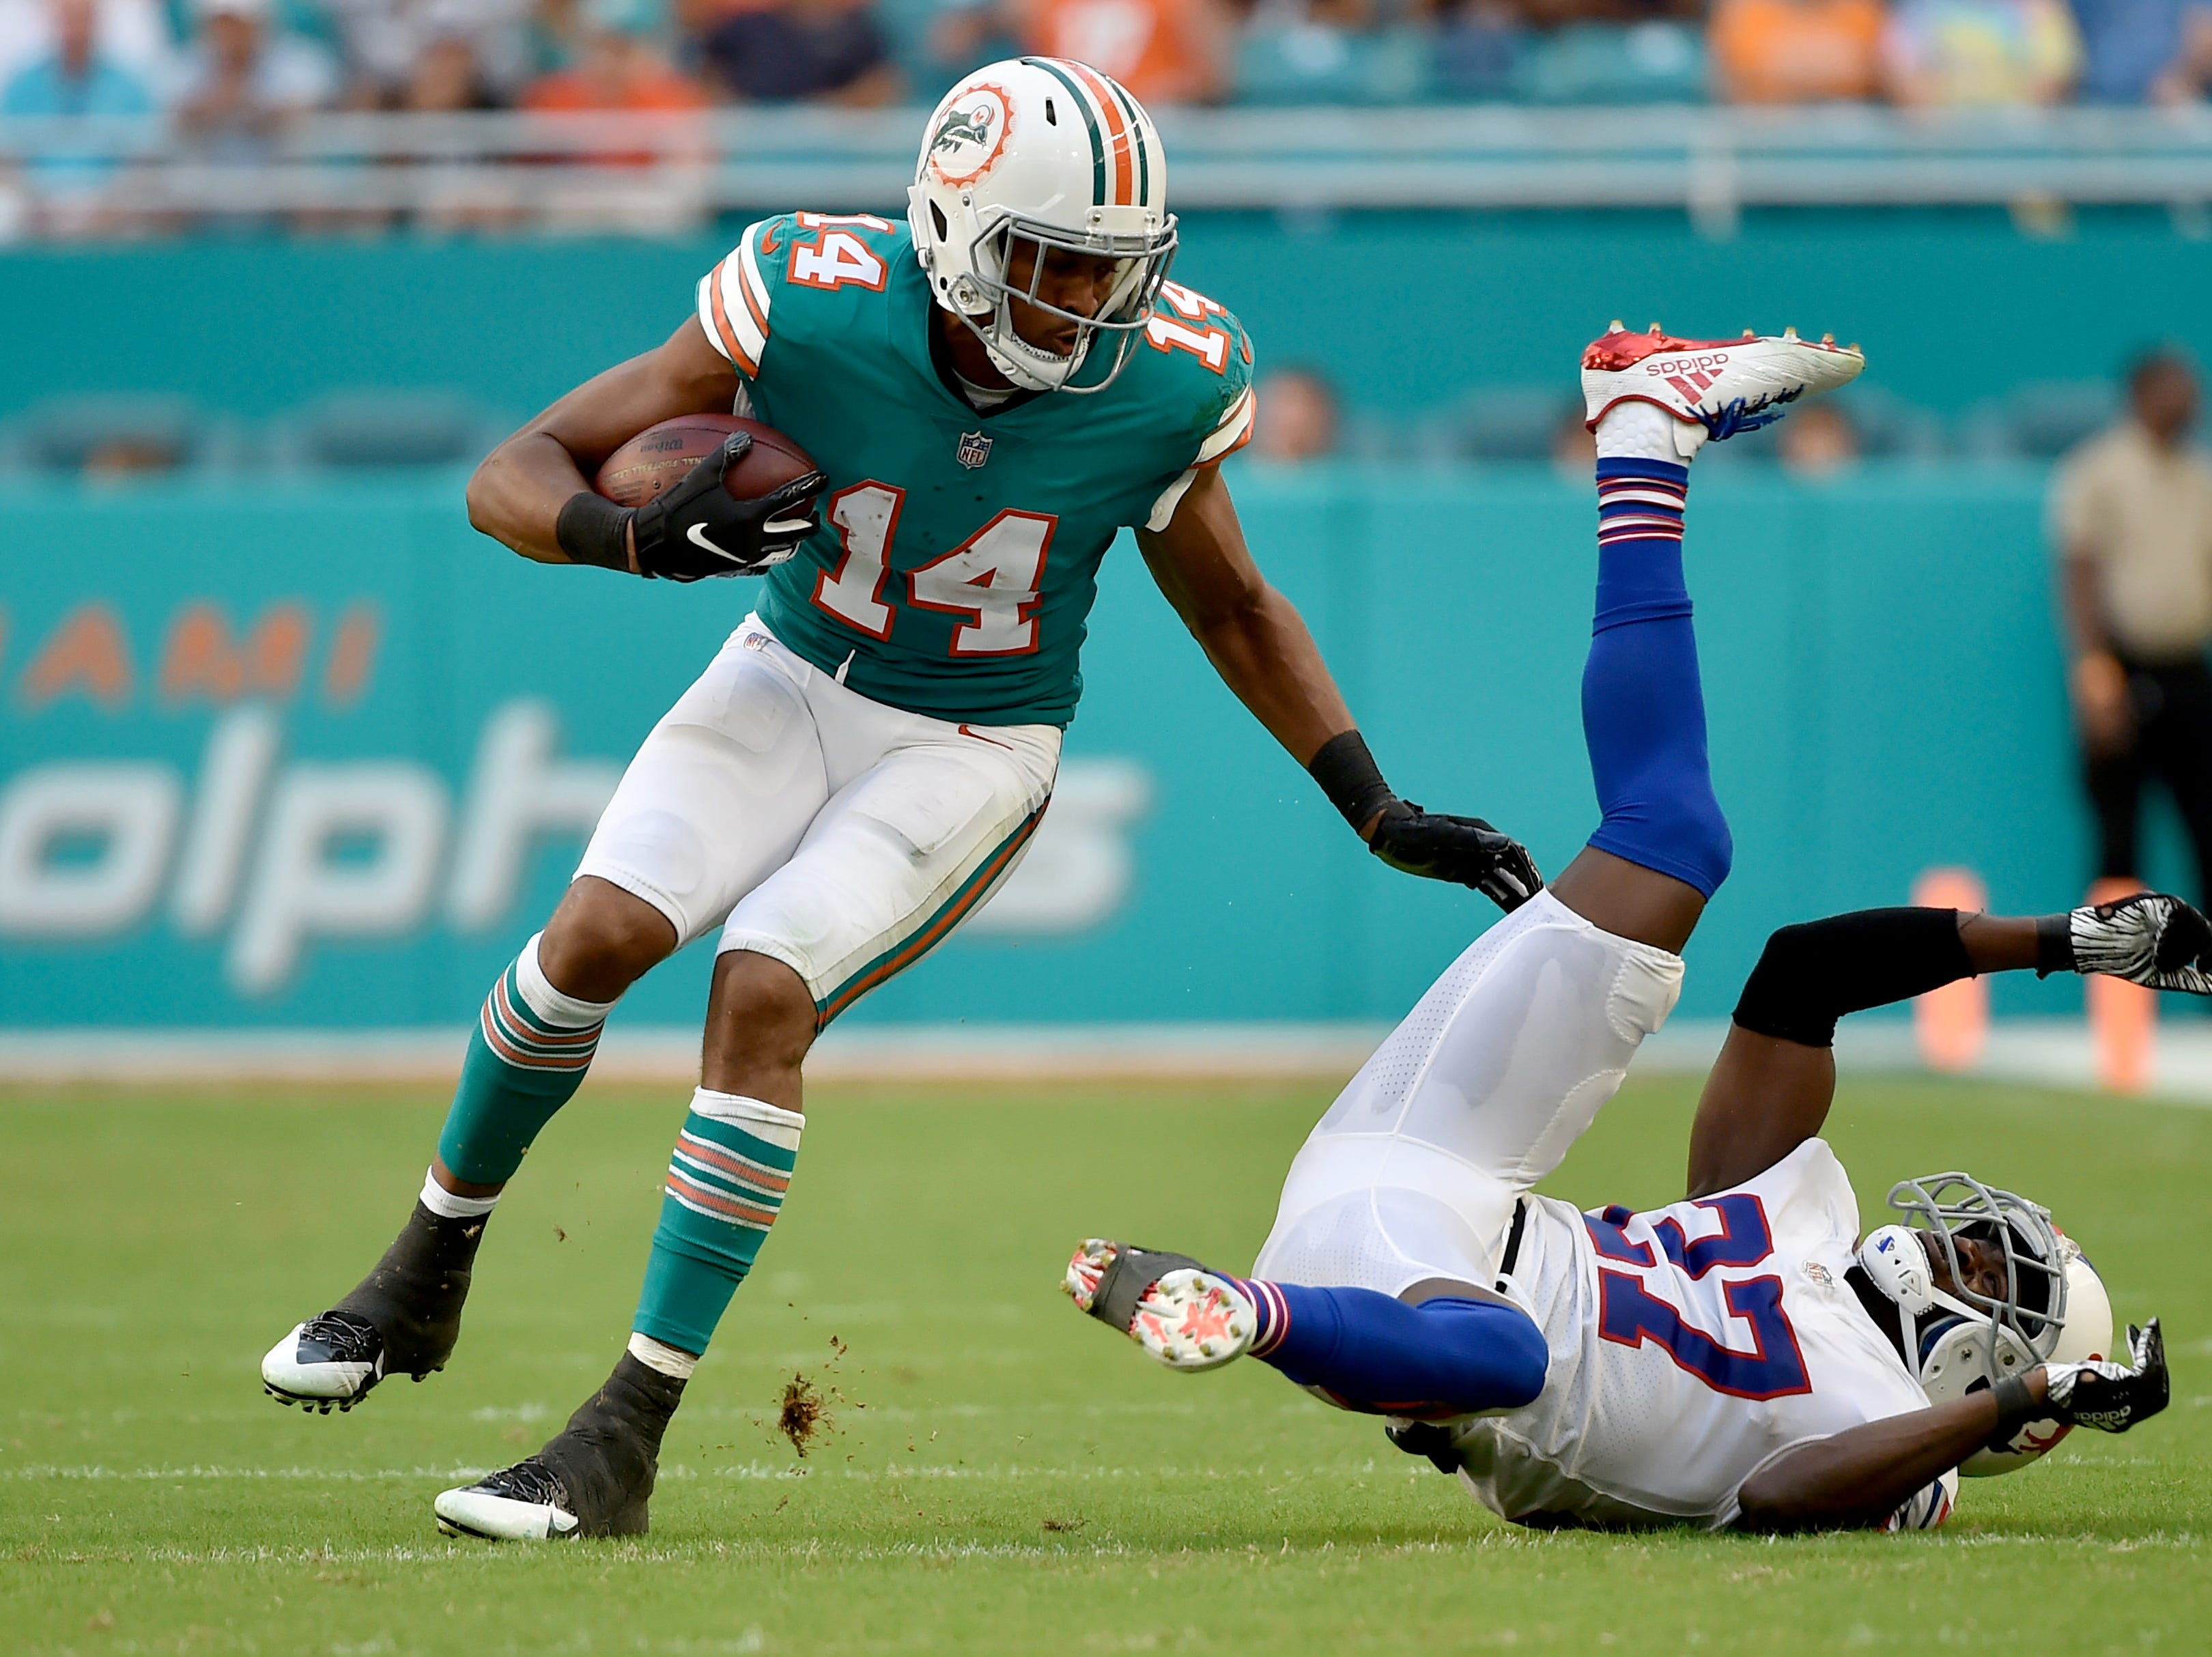 Dec 2, 2018; Miami Gardens, FL, USA; Miami Dolphins wide receiver Brice Butler (14) completes a pass against Buffalo Bills cornerback Tre'Davious White (27) during the second half at Hard Rock Stadium. Mandatory Credit: Steve Mitchell-USA TODAY Sports